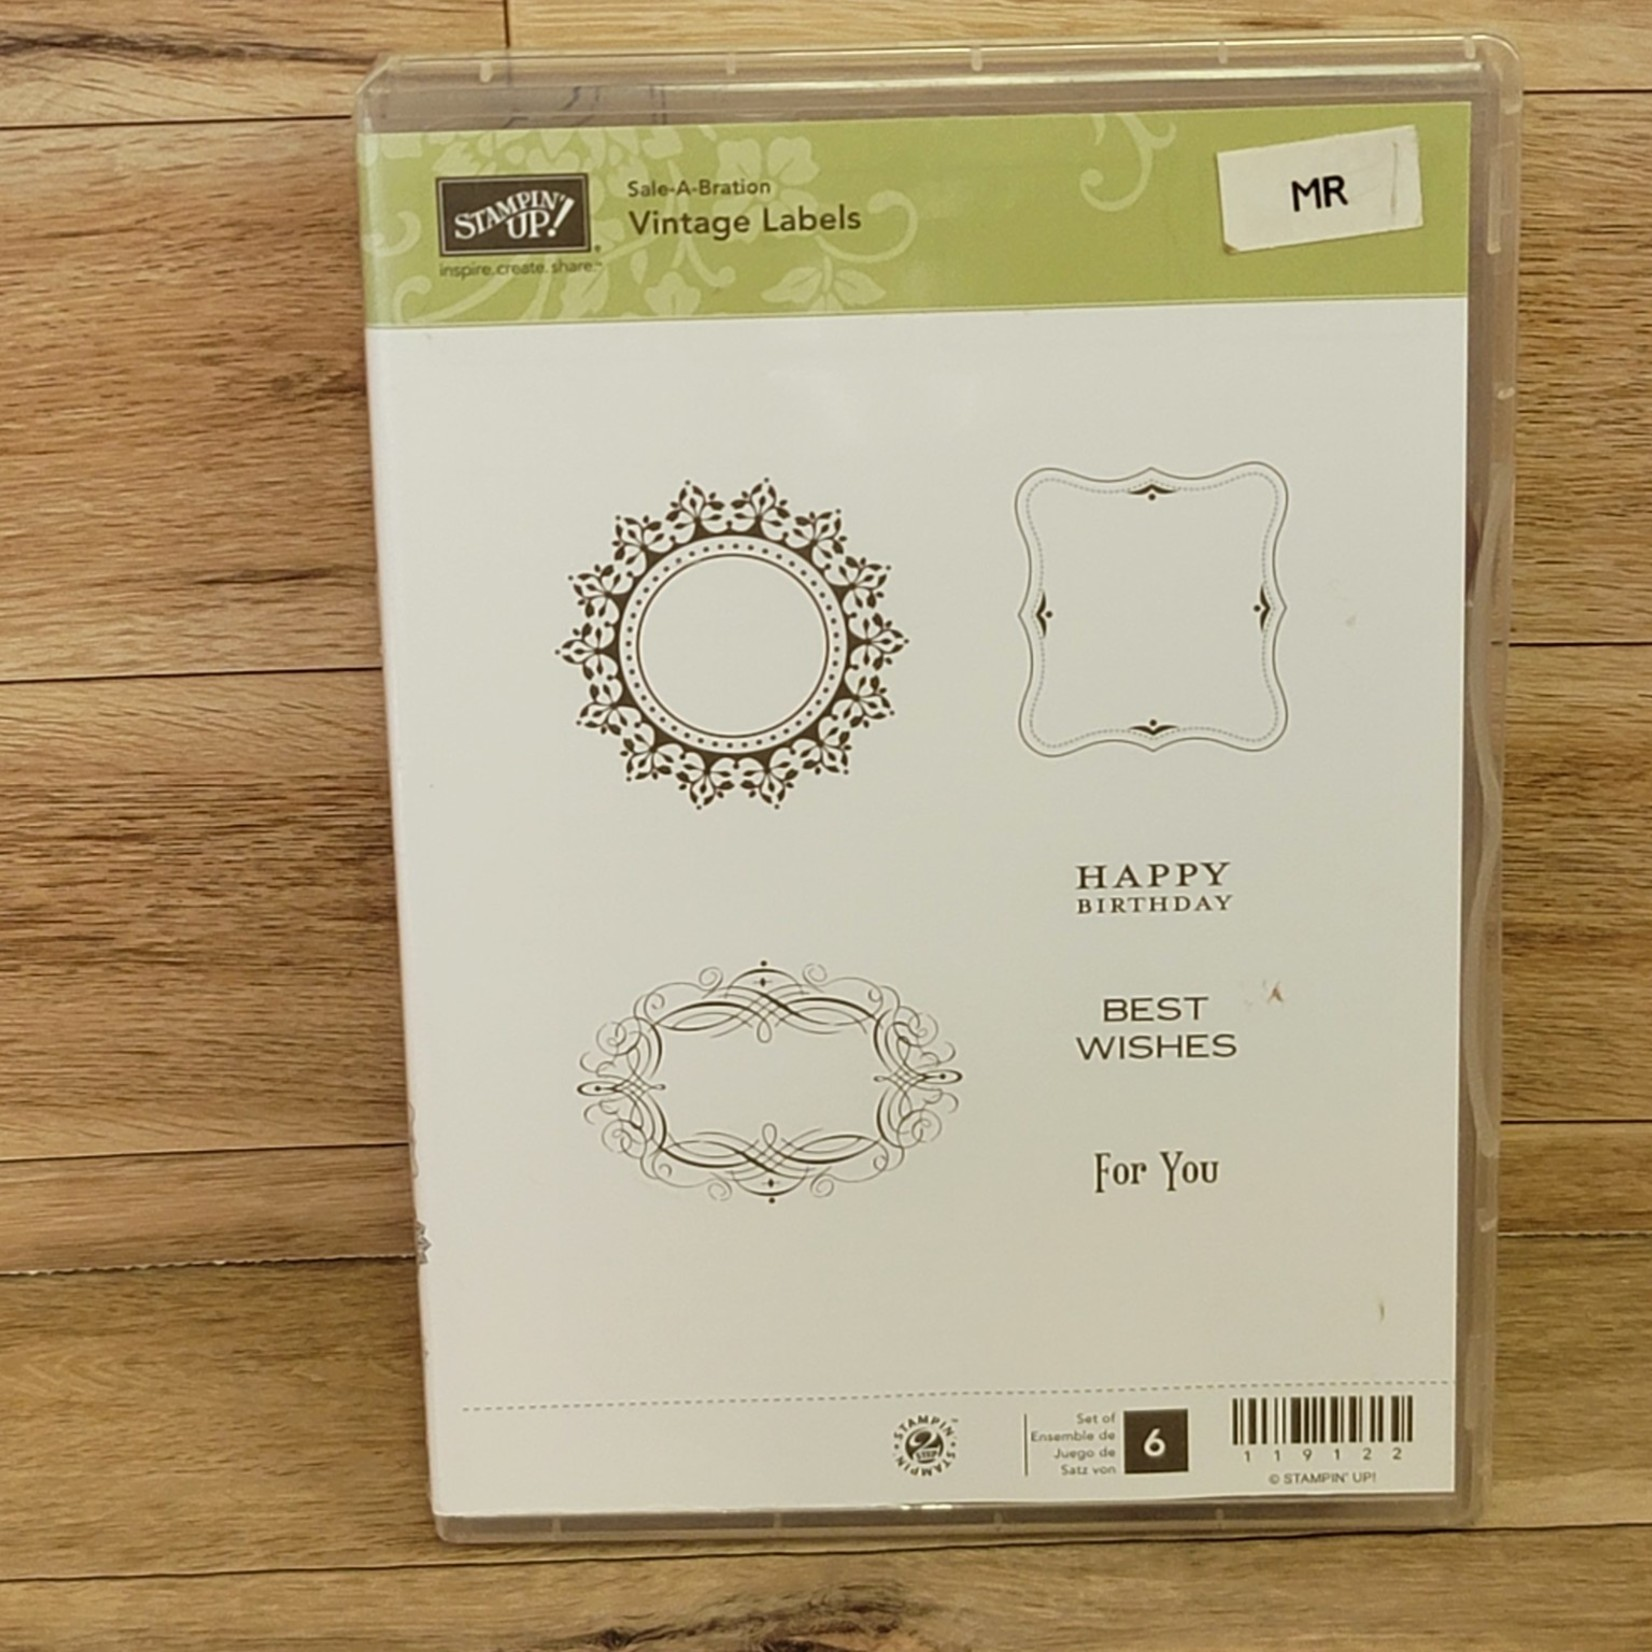 Stampin' Up Stampin Up - Rubber cling stamps - Vintage Labels